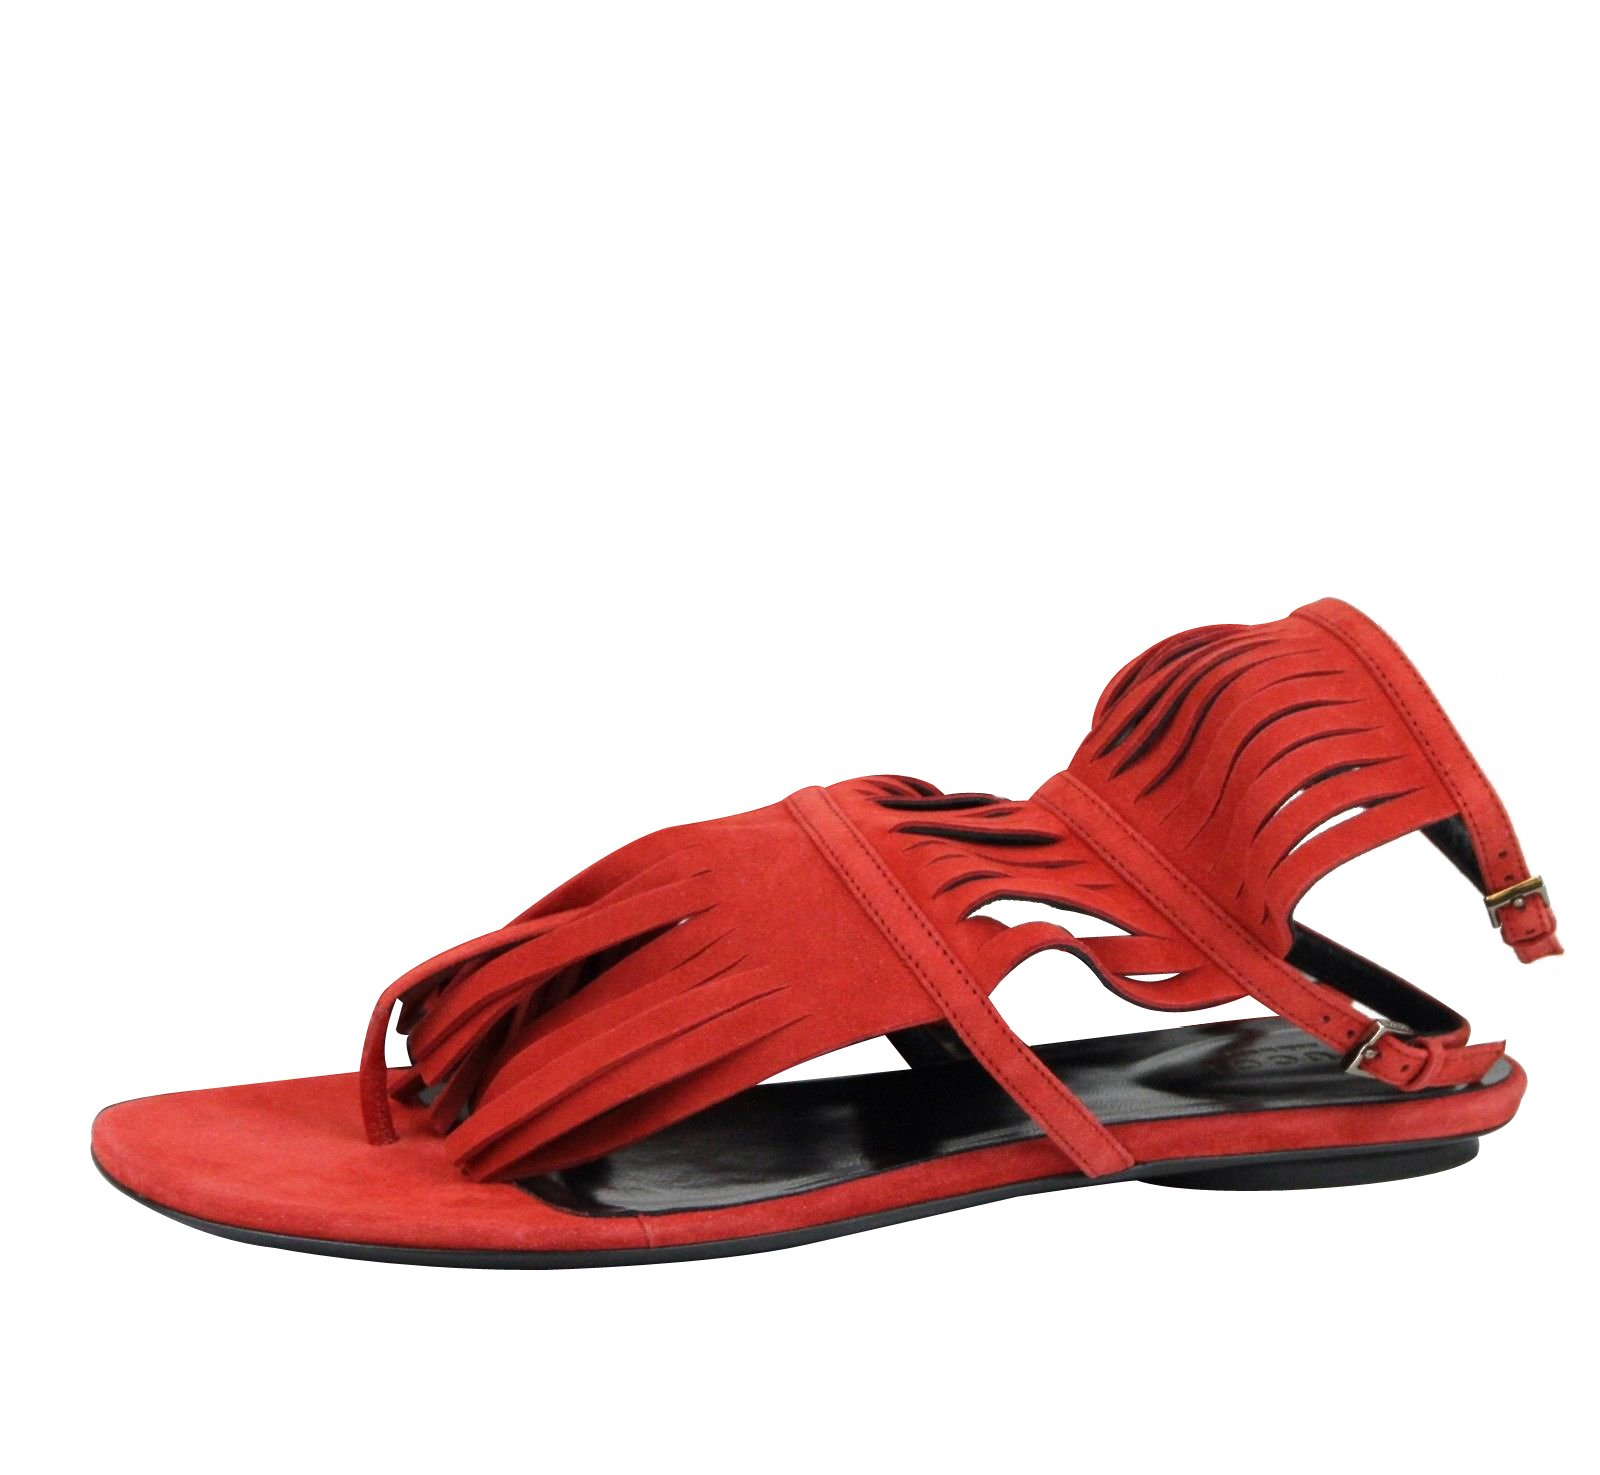 Gucci Red Suede Becky Fringe Thong Gladiator Flat Sandal 347285 6425 (IT 38 / US 8)